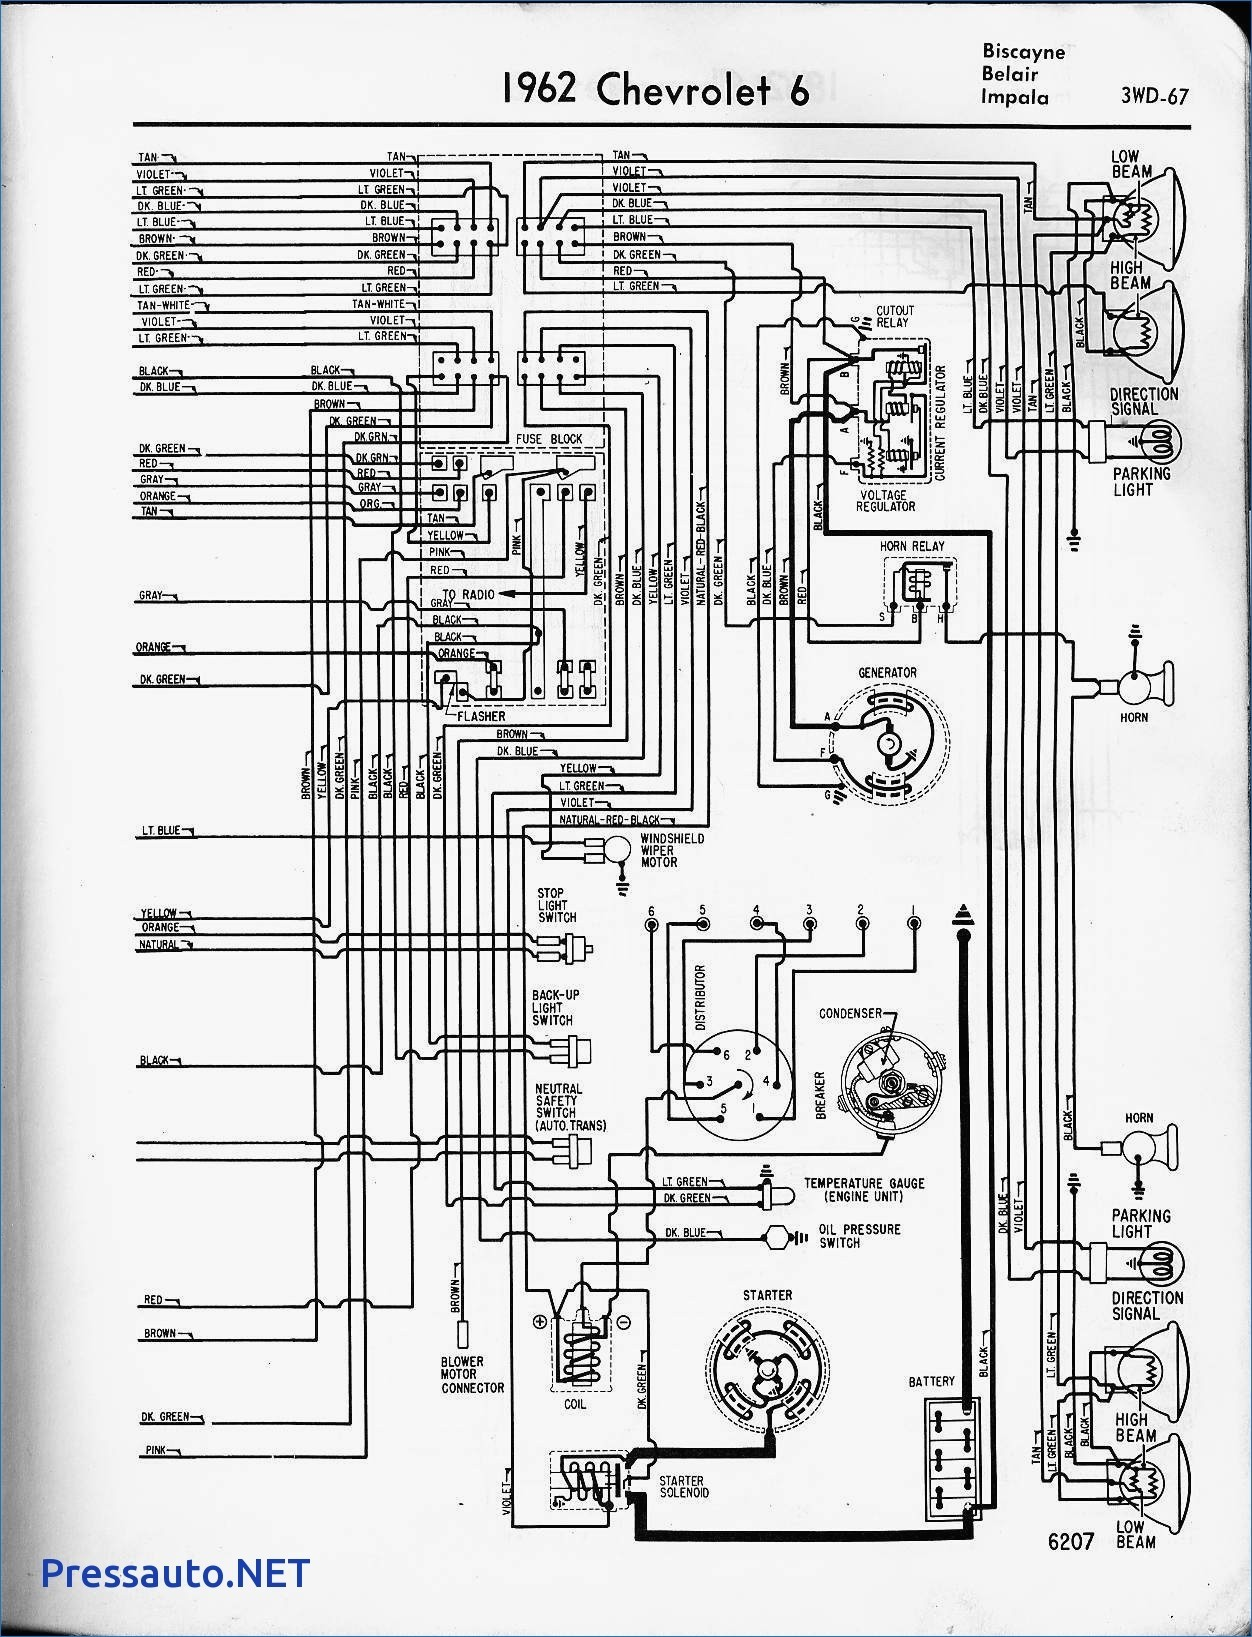 1962 nova wiring diagram download wiring diagrams u2022 rh wiringdiagramblog today 1964 nova wiring diagram 1962 nova turn signal wiring diagram